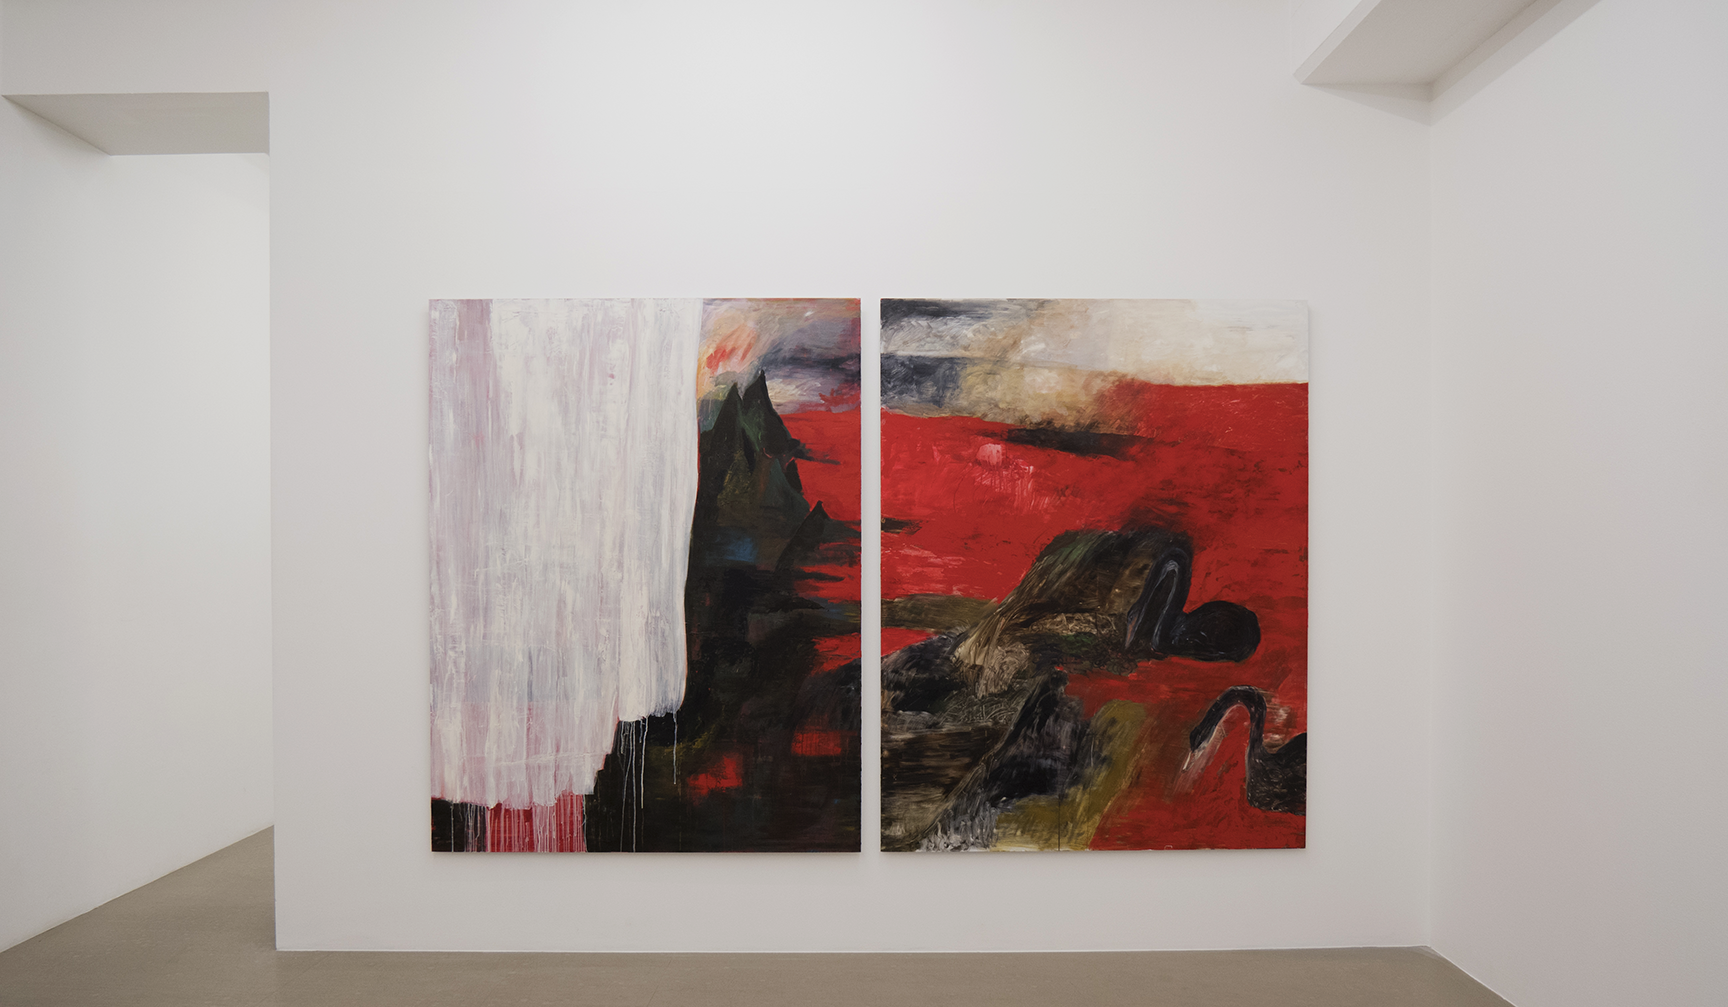 Karin Lind - In Between Peaks, oil on aluminum laminate, diptych, 180x280 cm, 2017